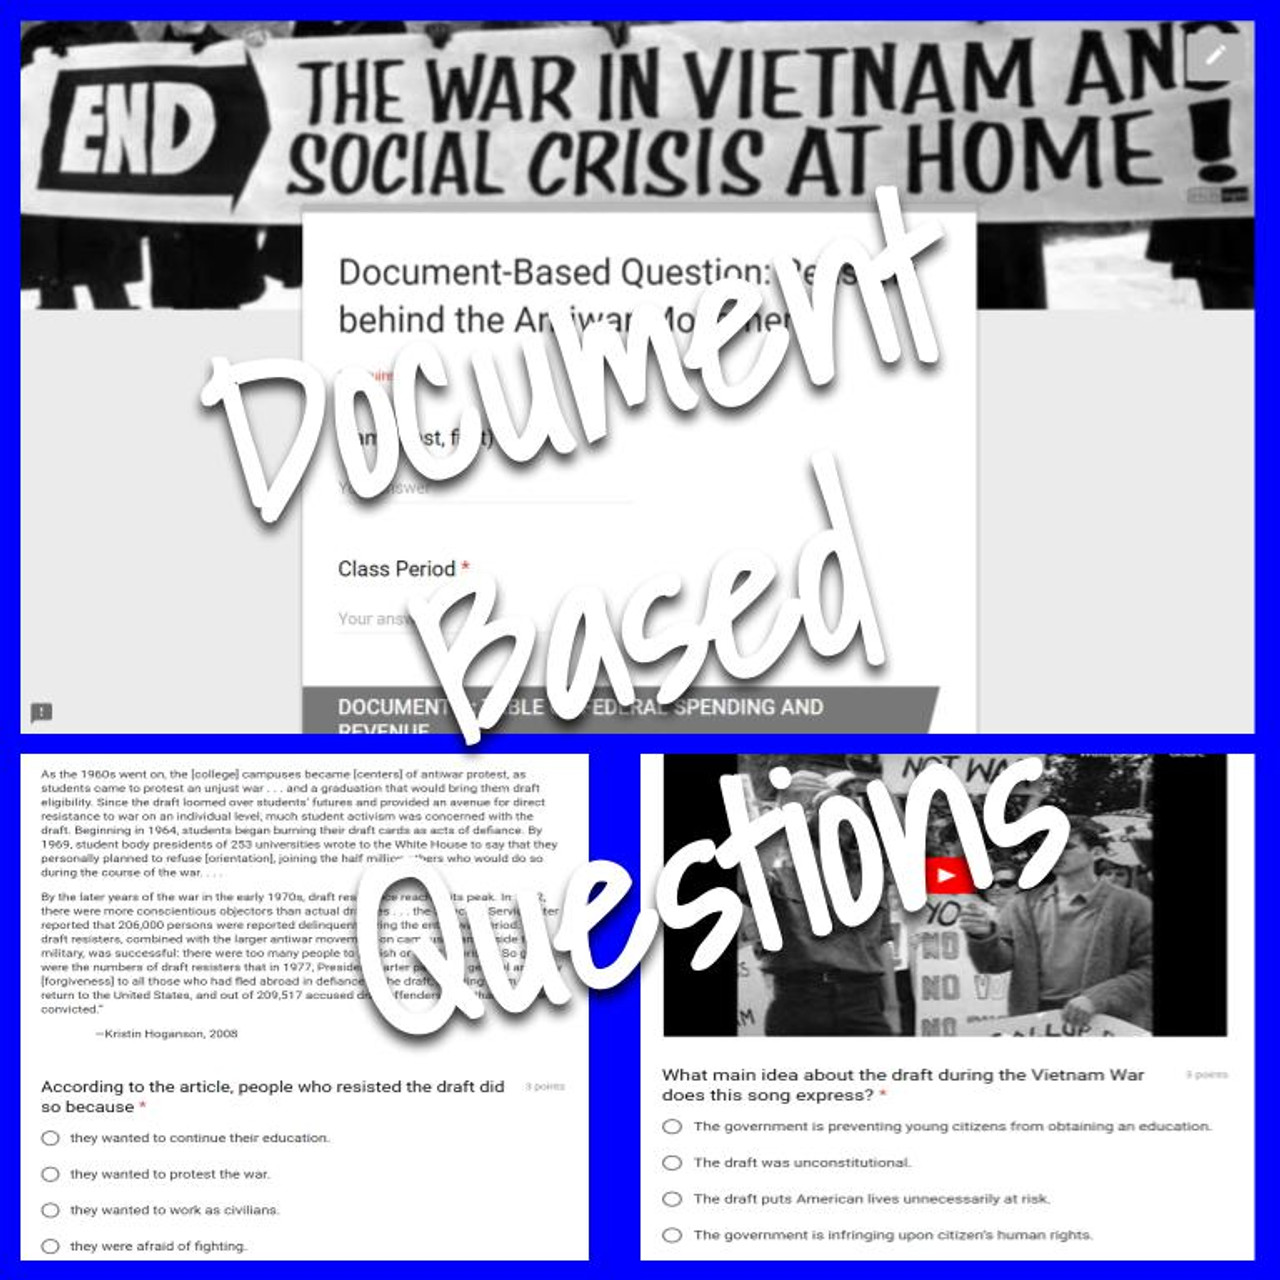 Document-Based Question: Reasons behind the Antiwar Movement